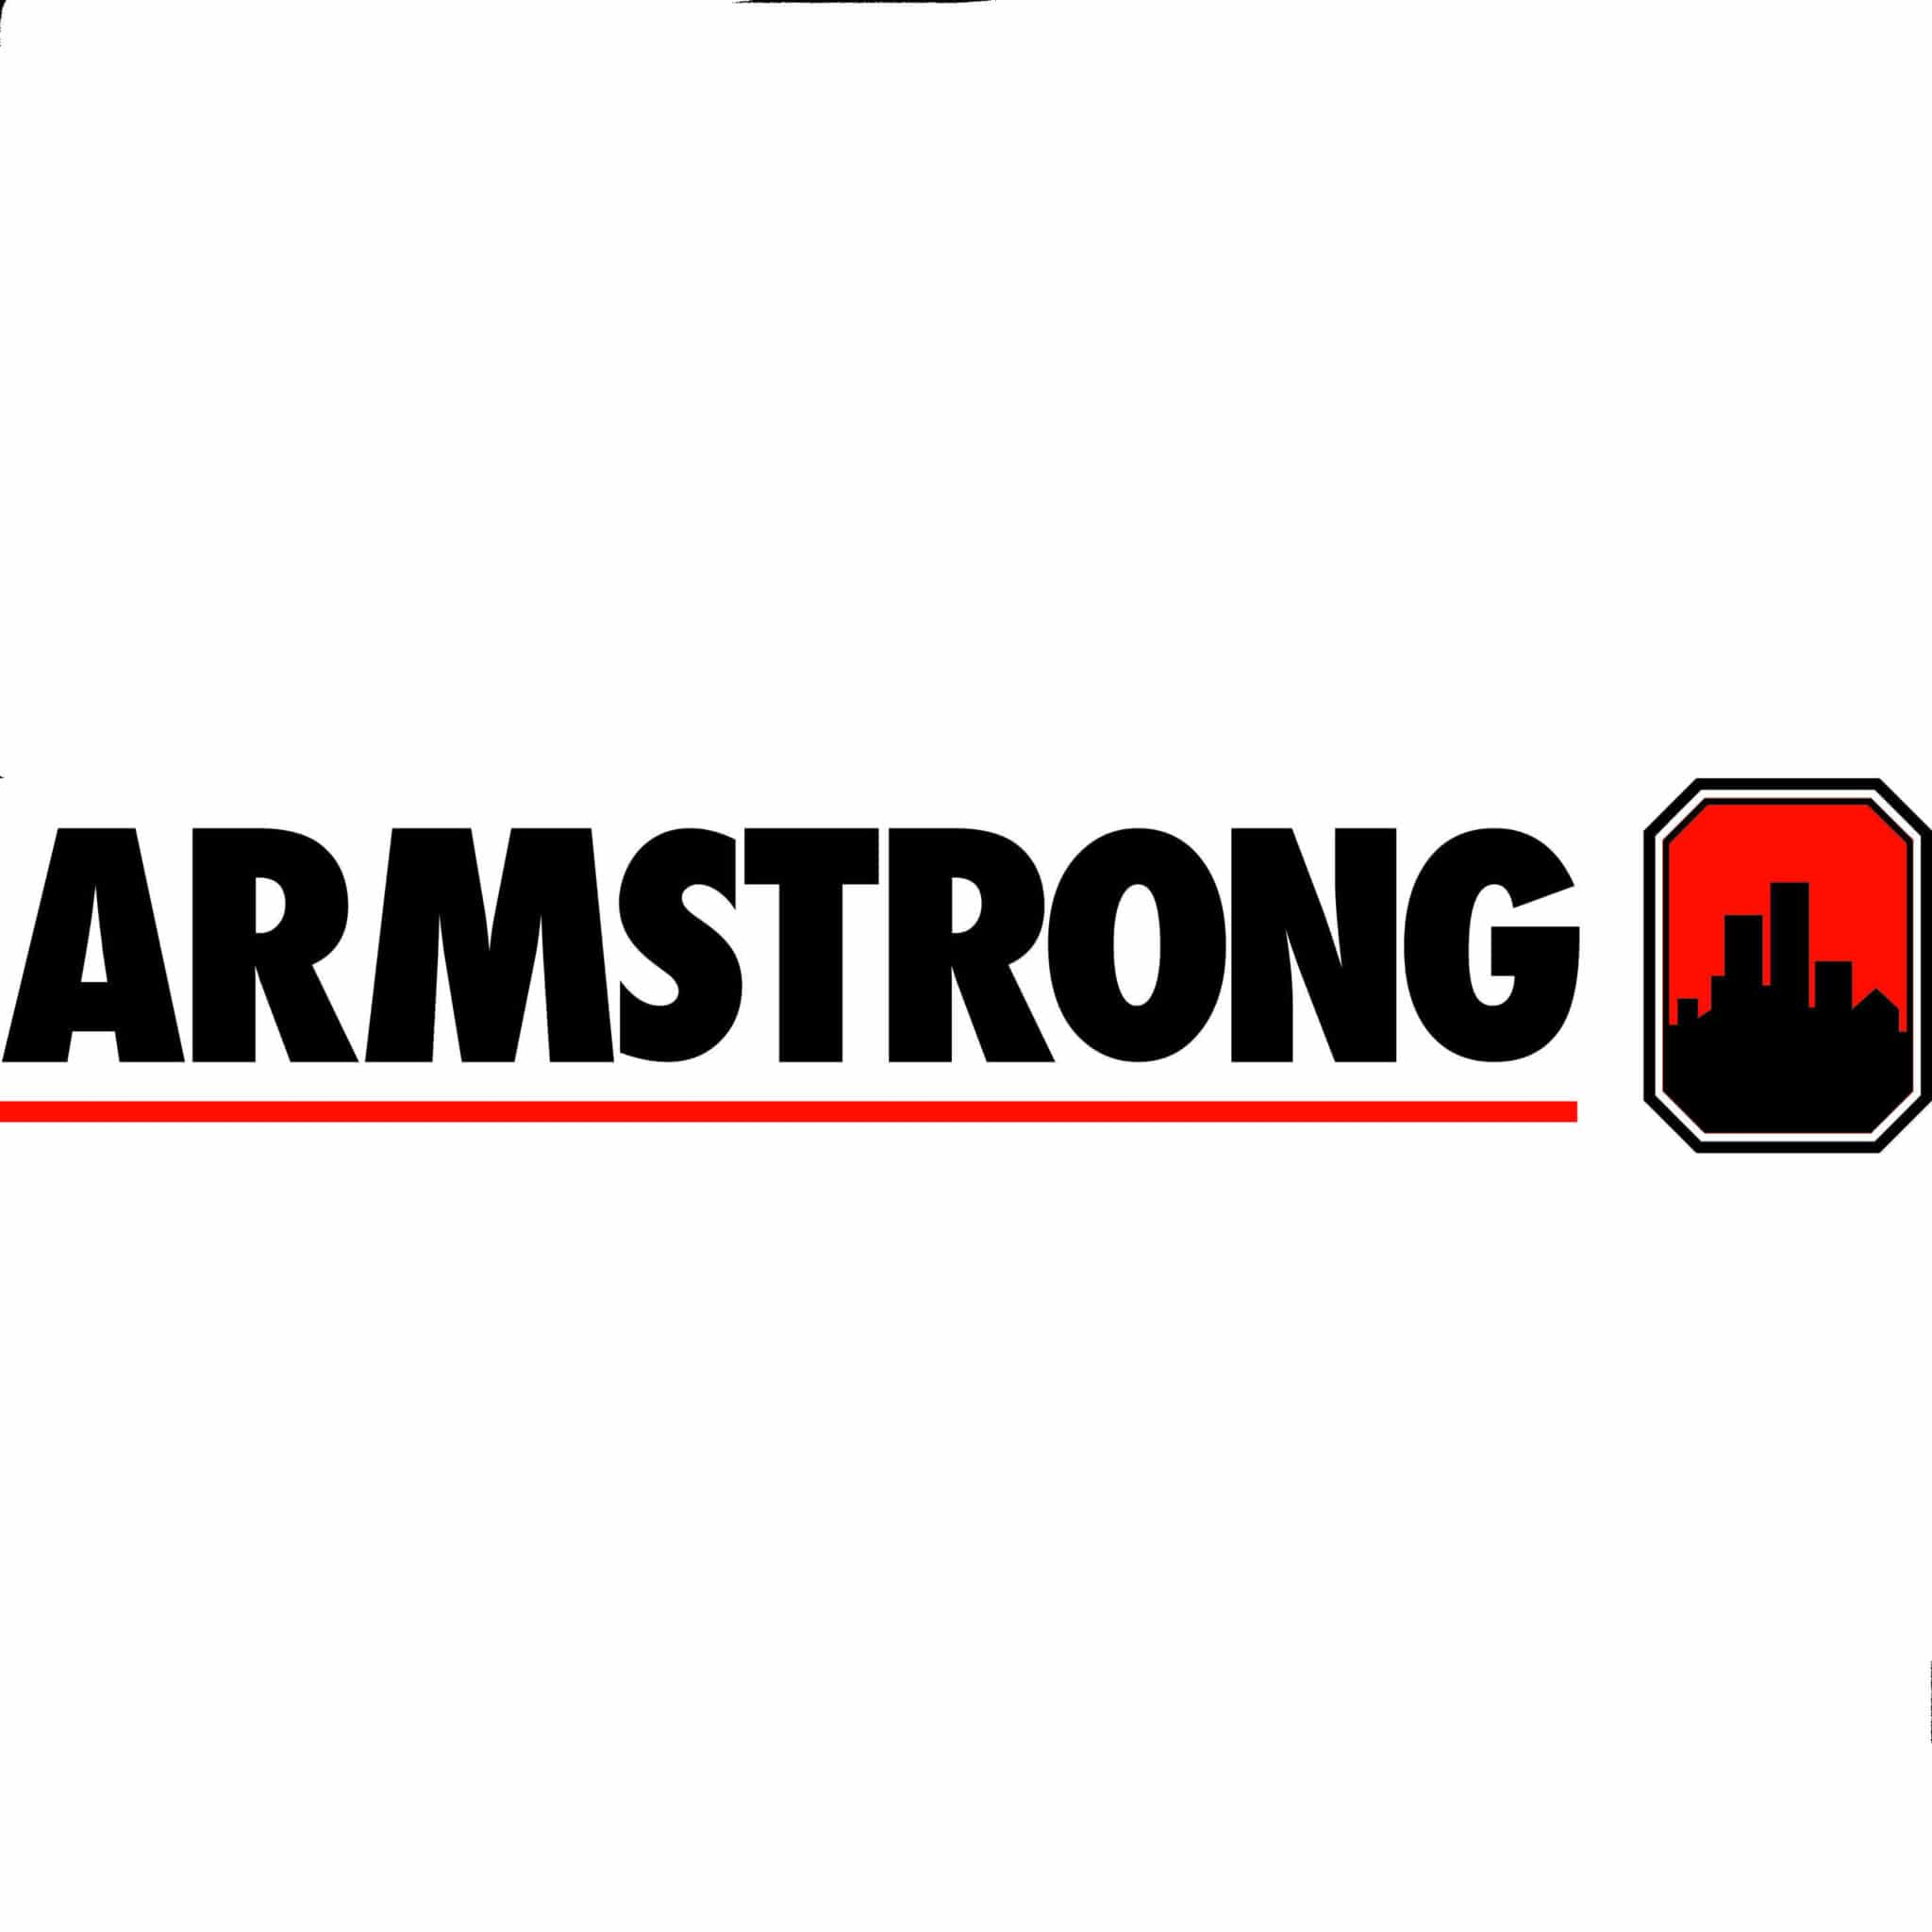 Major European brand Armstrong – Now Available in the UK